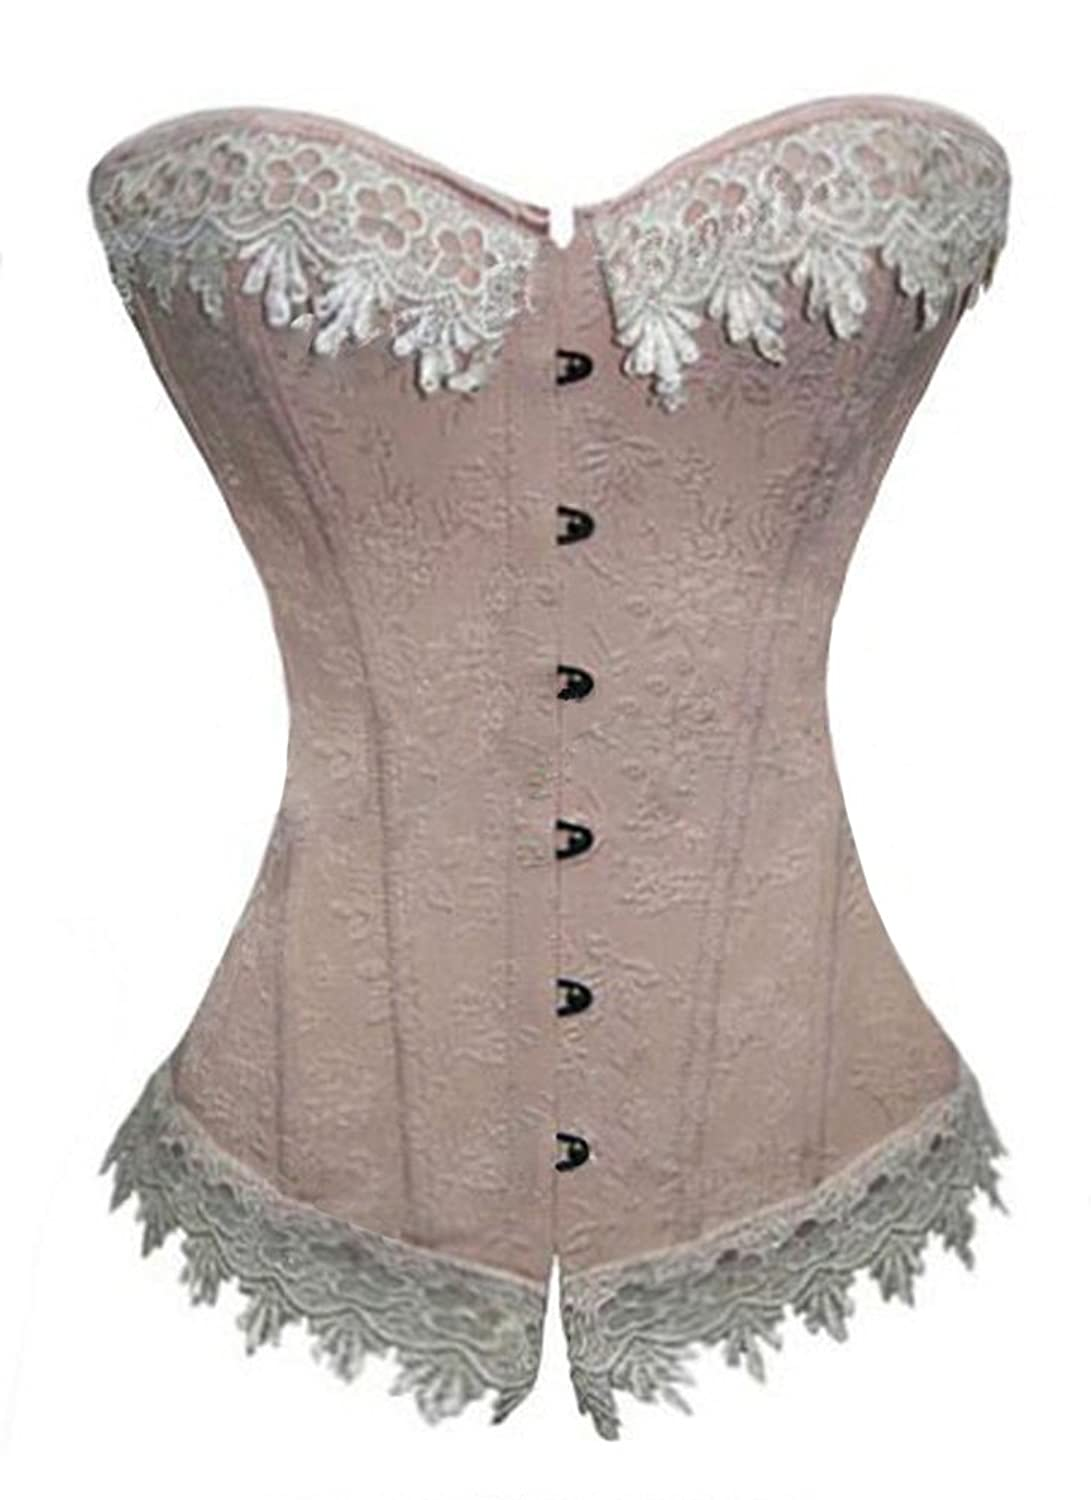 Vintage Inspired Wedding Accessories Luvsecretlingerie Moulin Rouge Victorian Overbust Fashion Corset Bustier $15.99 AT vintagedancer.com